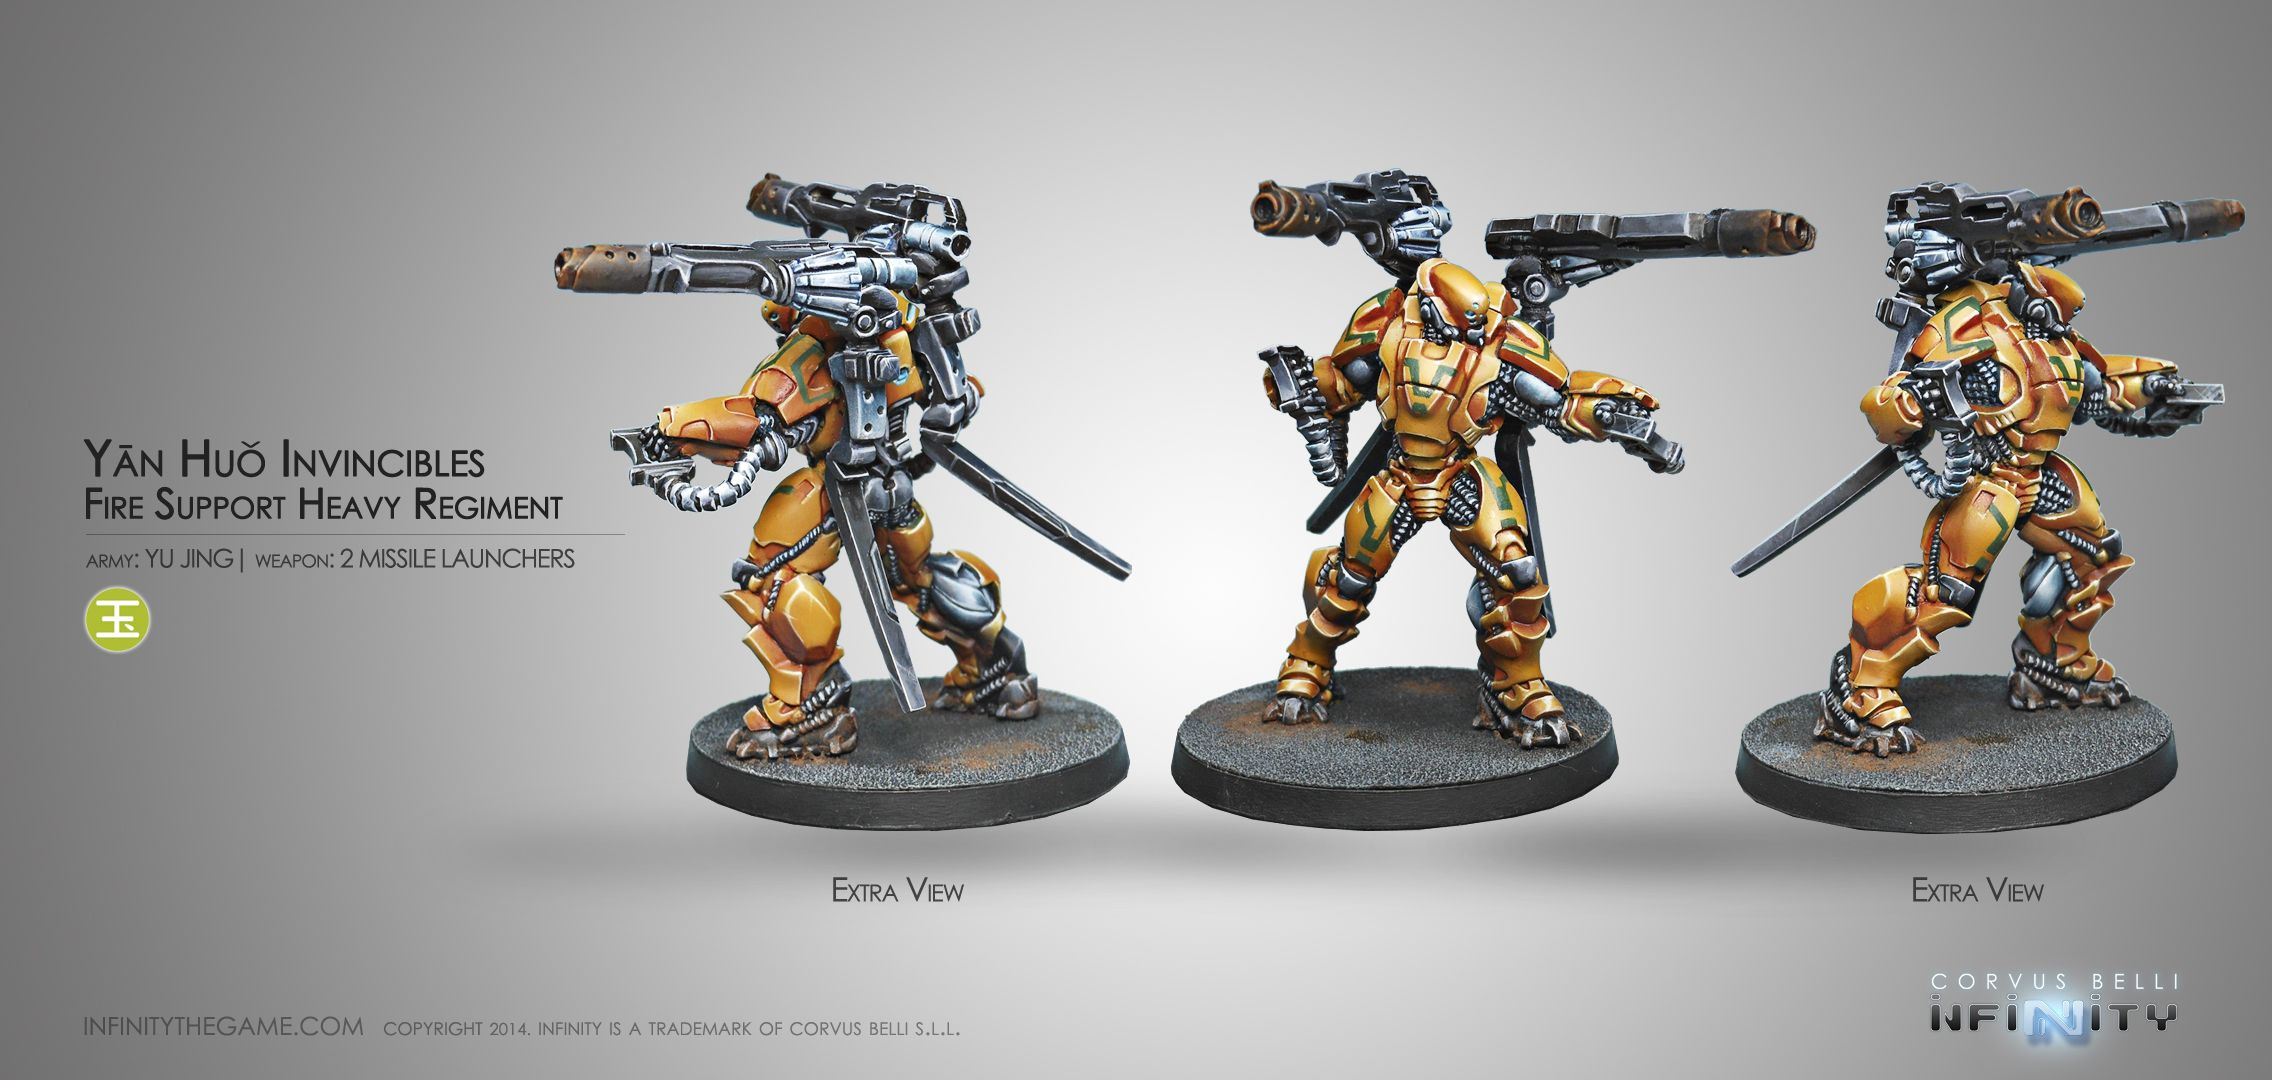 Yan Huo Invincibles, Fire Support Heavy Regiment (2 Missile Launchers)